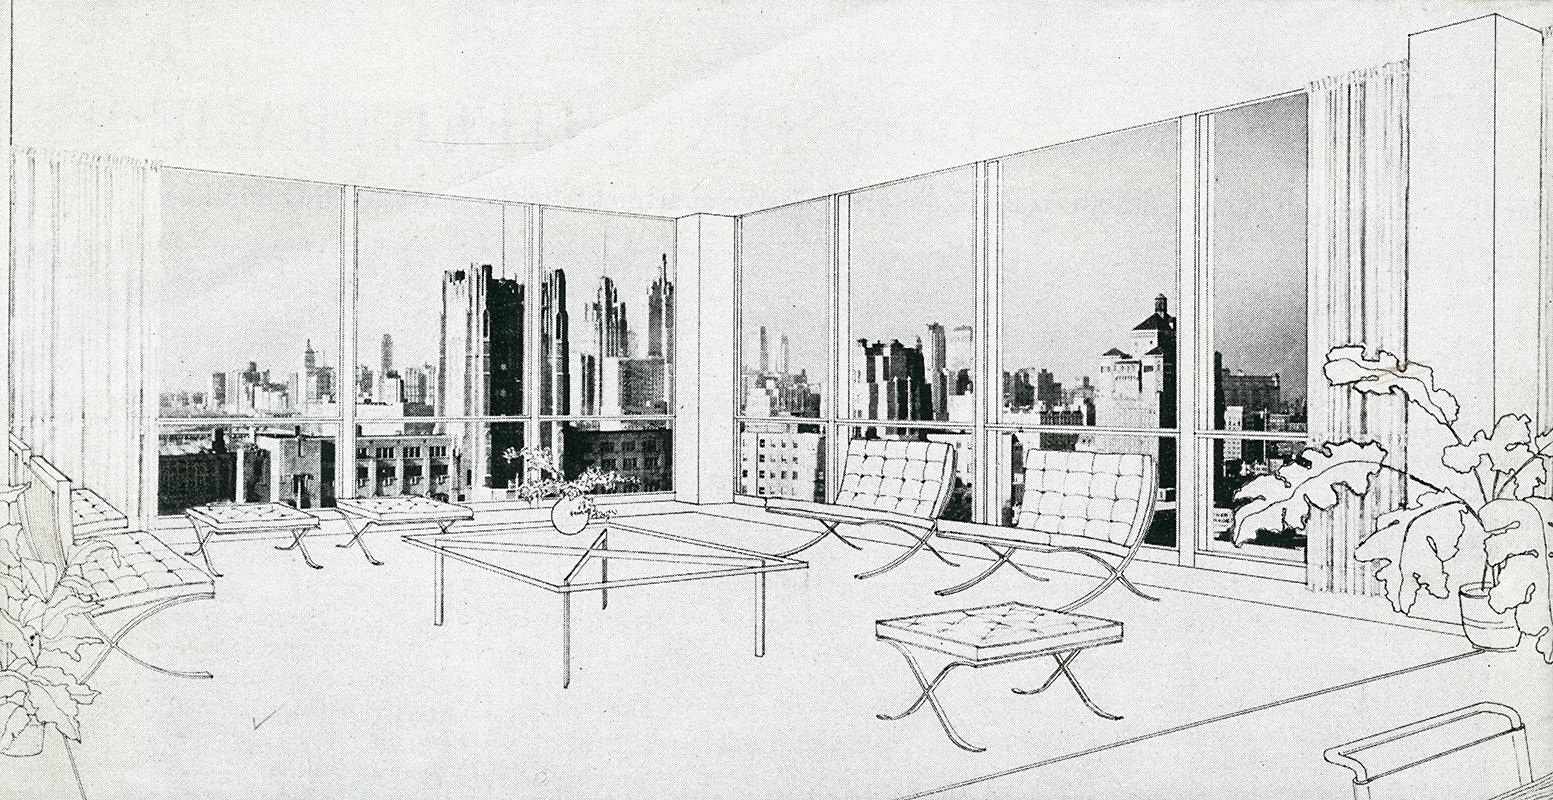 Home Designs And Floor Plans Mies Van Der Rohe Architectural Forum Jan 1950 76 Rndrd